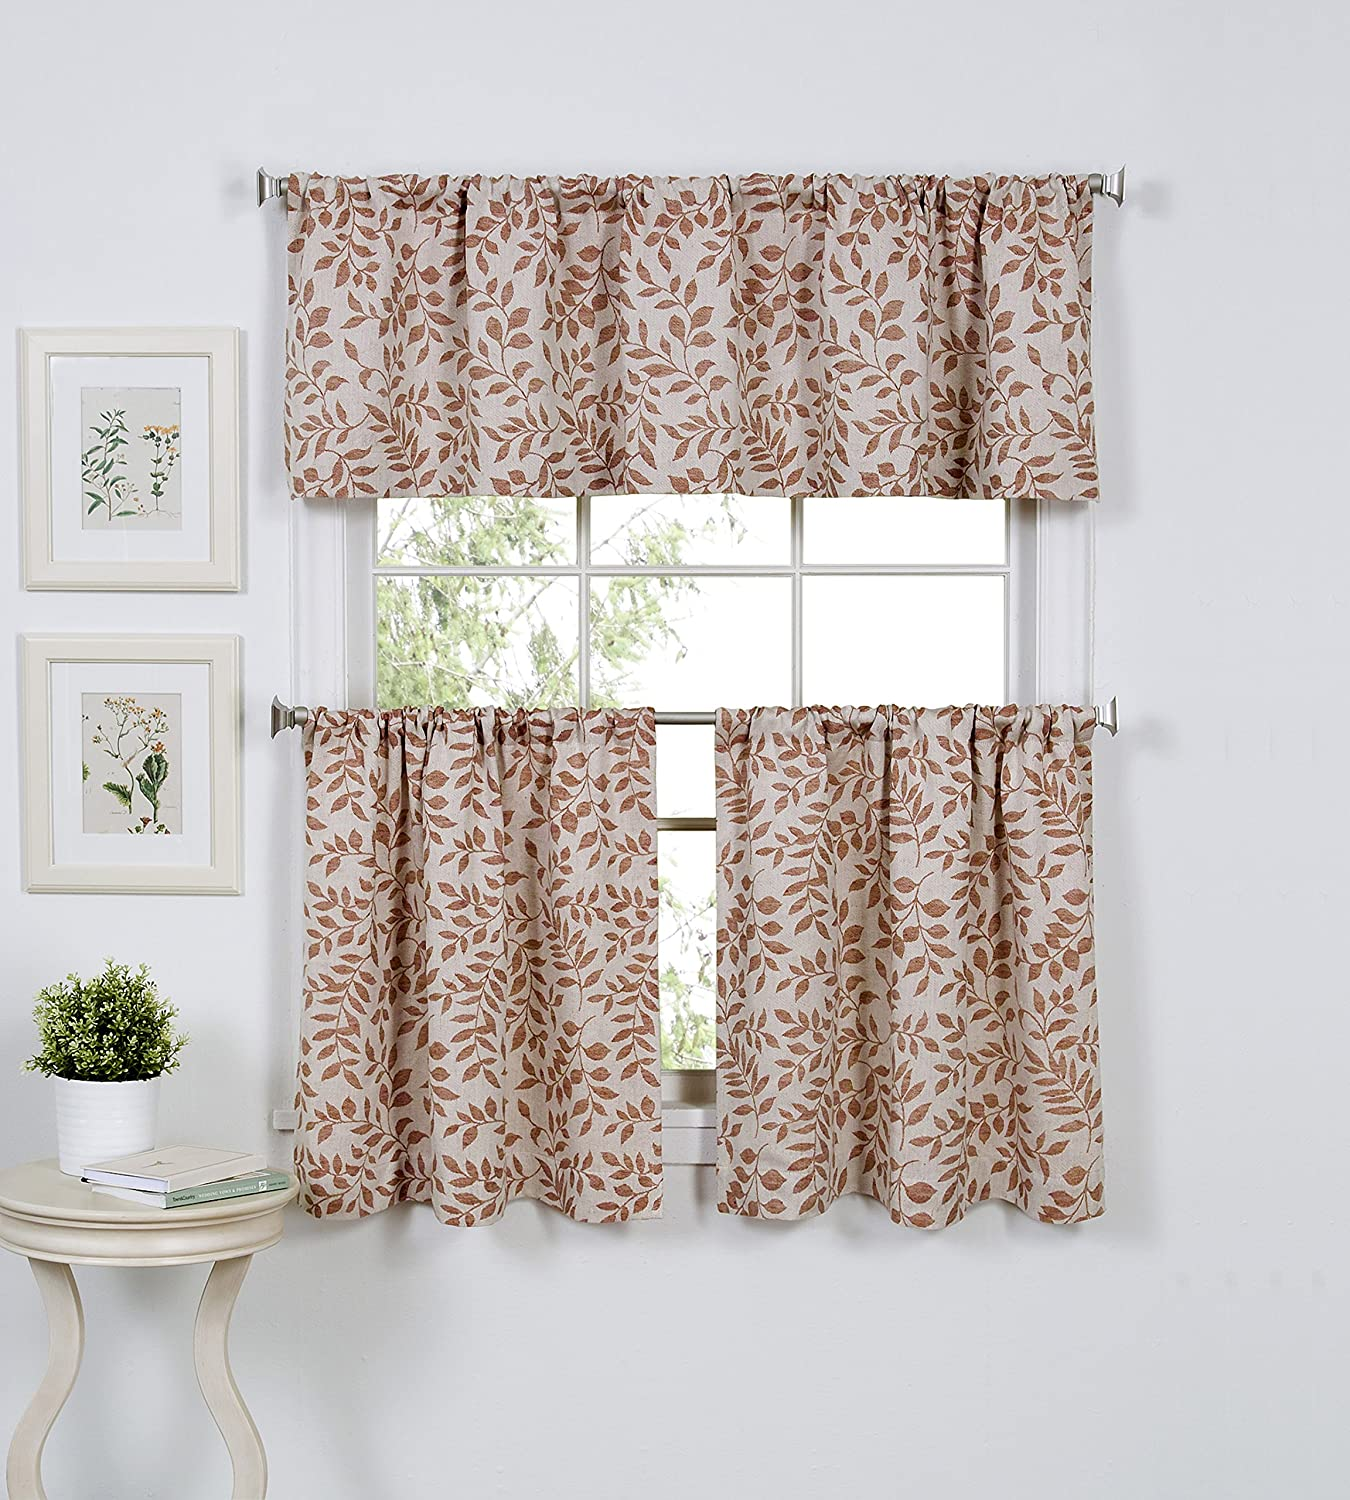 """Elrene Home Fashions Serene Window Tier, 30""""x24"""" (Set of 2 60""""x15"""" (1 Valance), Spice Red, 2 Count"""